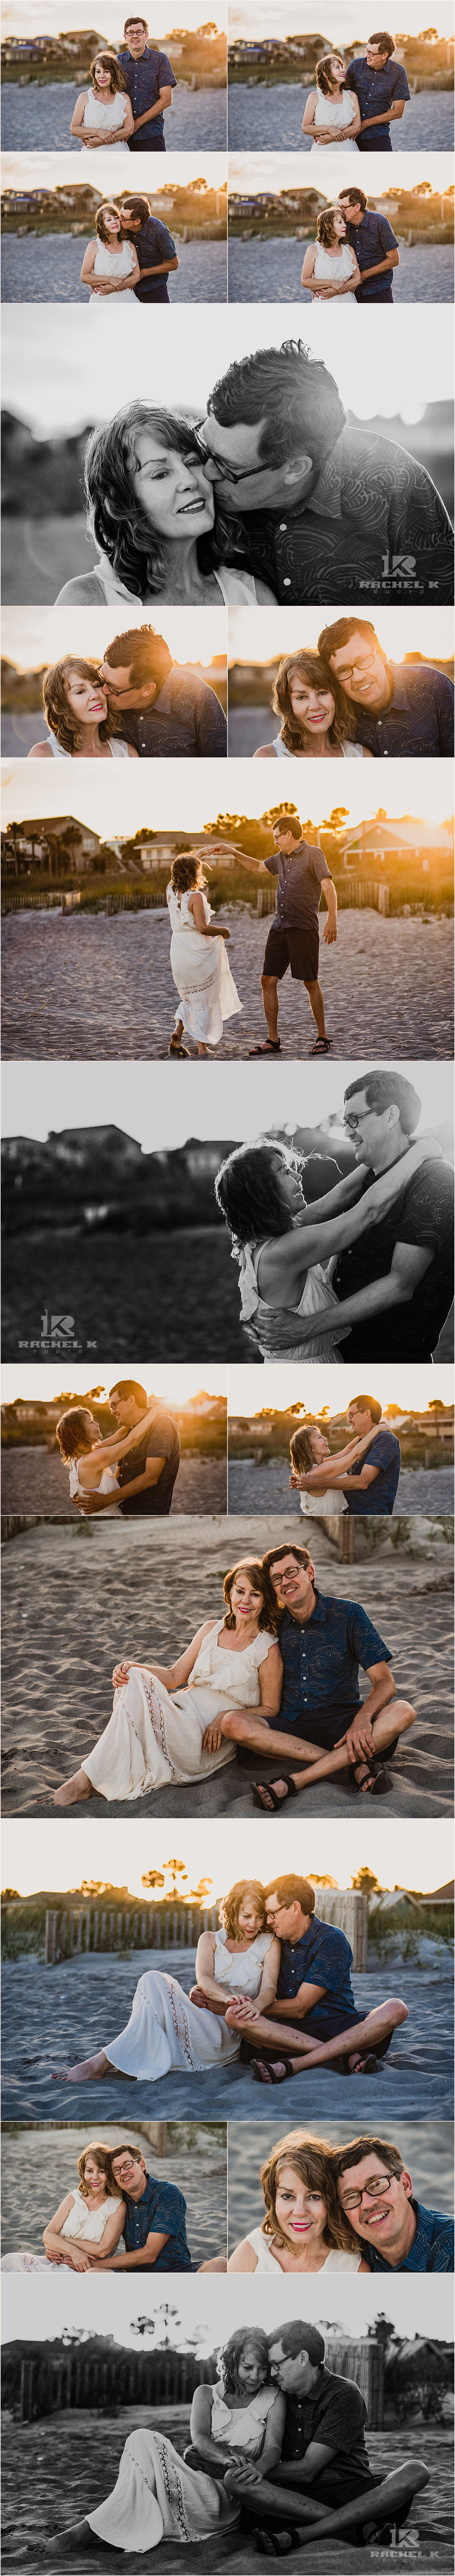 Folly beach couple session by Rachel K Photo